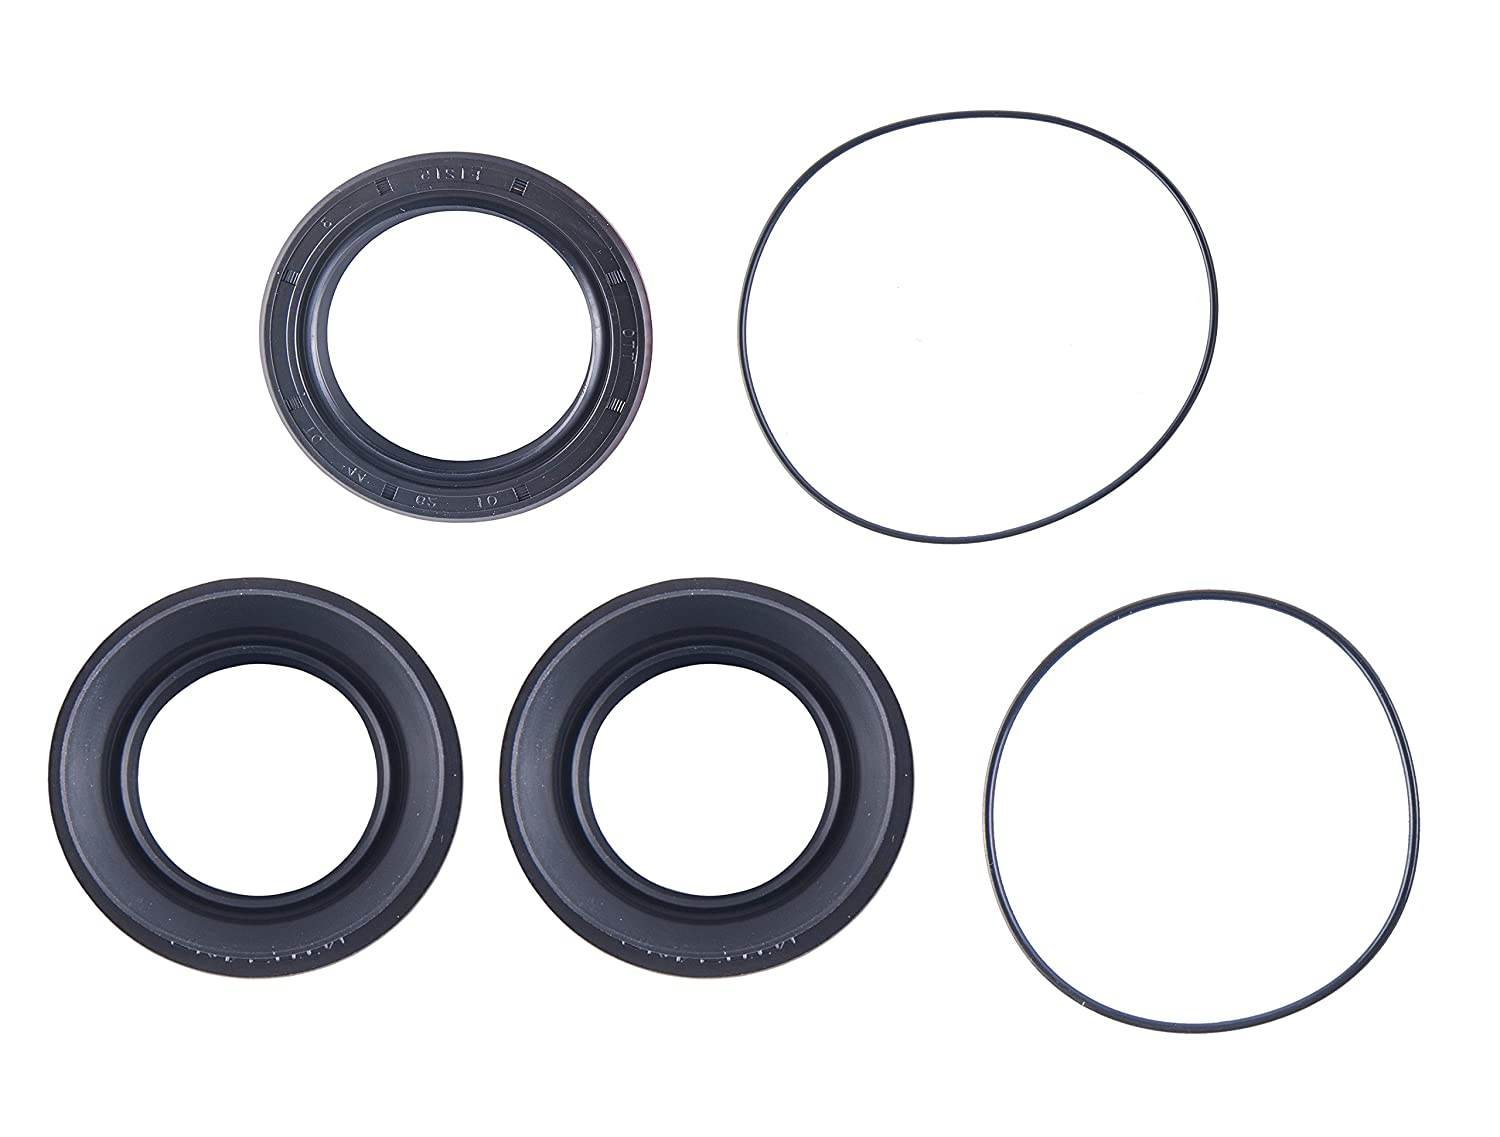 Yamaha front differential seal kit 550 / 700 Grizzly 2007 2008 2009 2010 - 2015 East Lake Axle